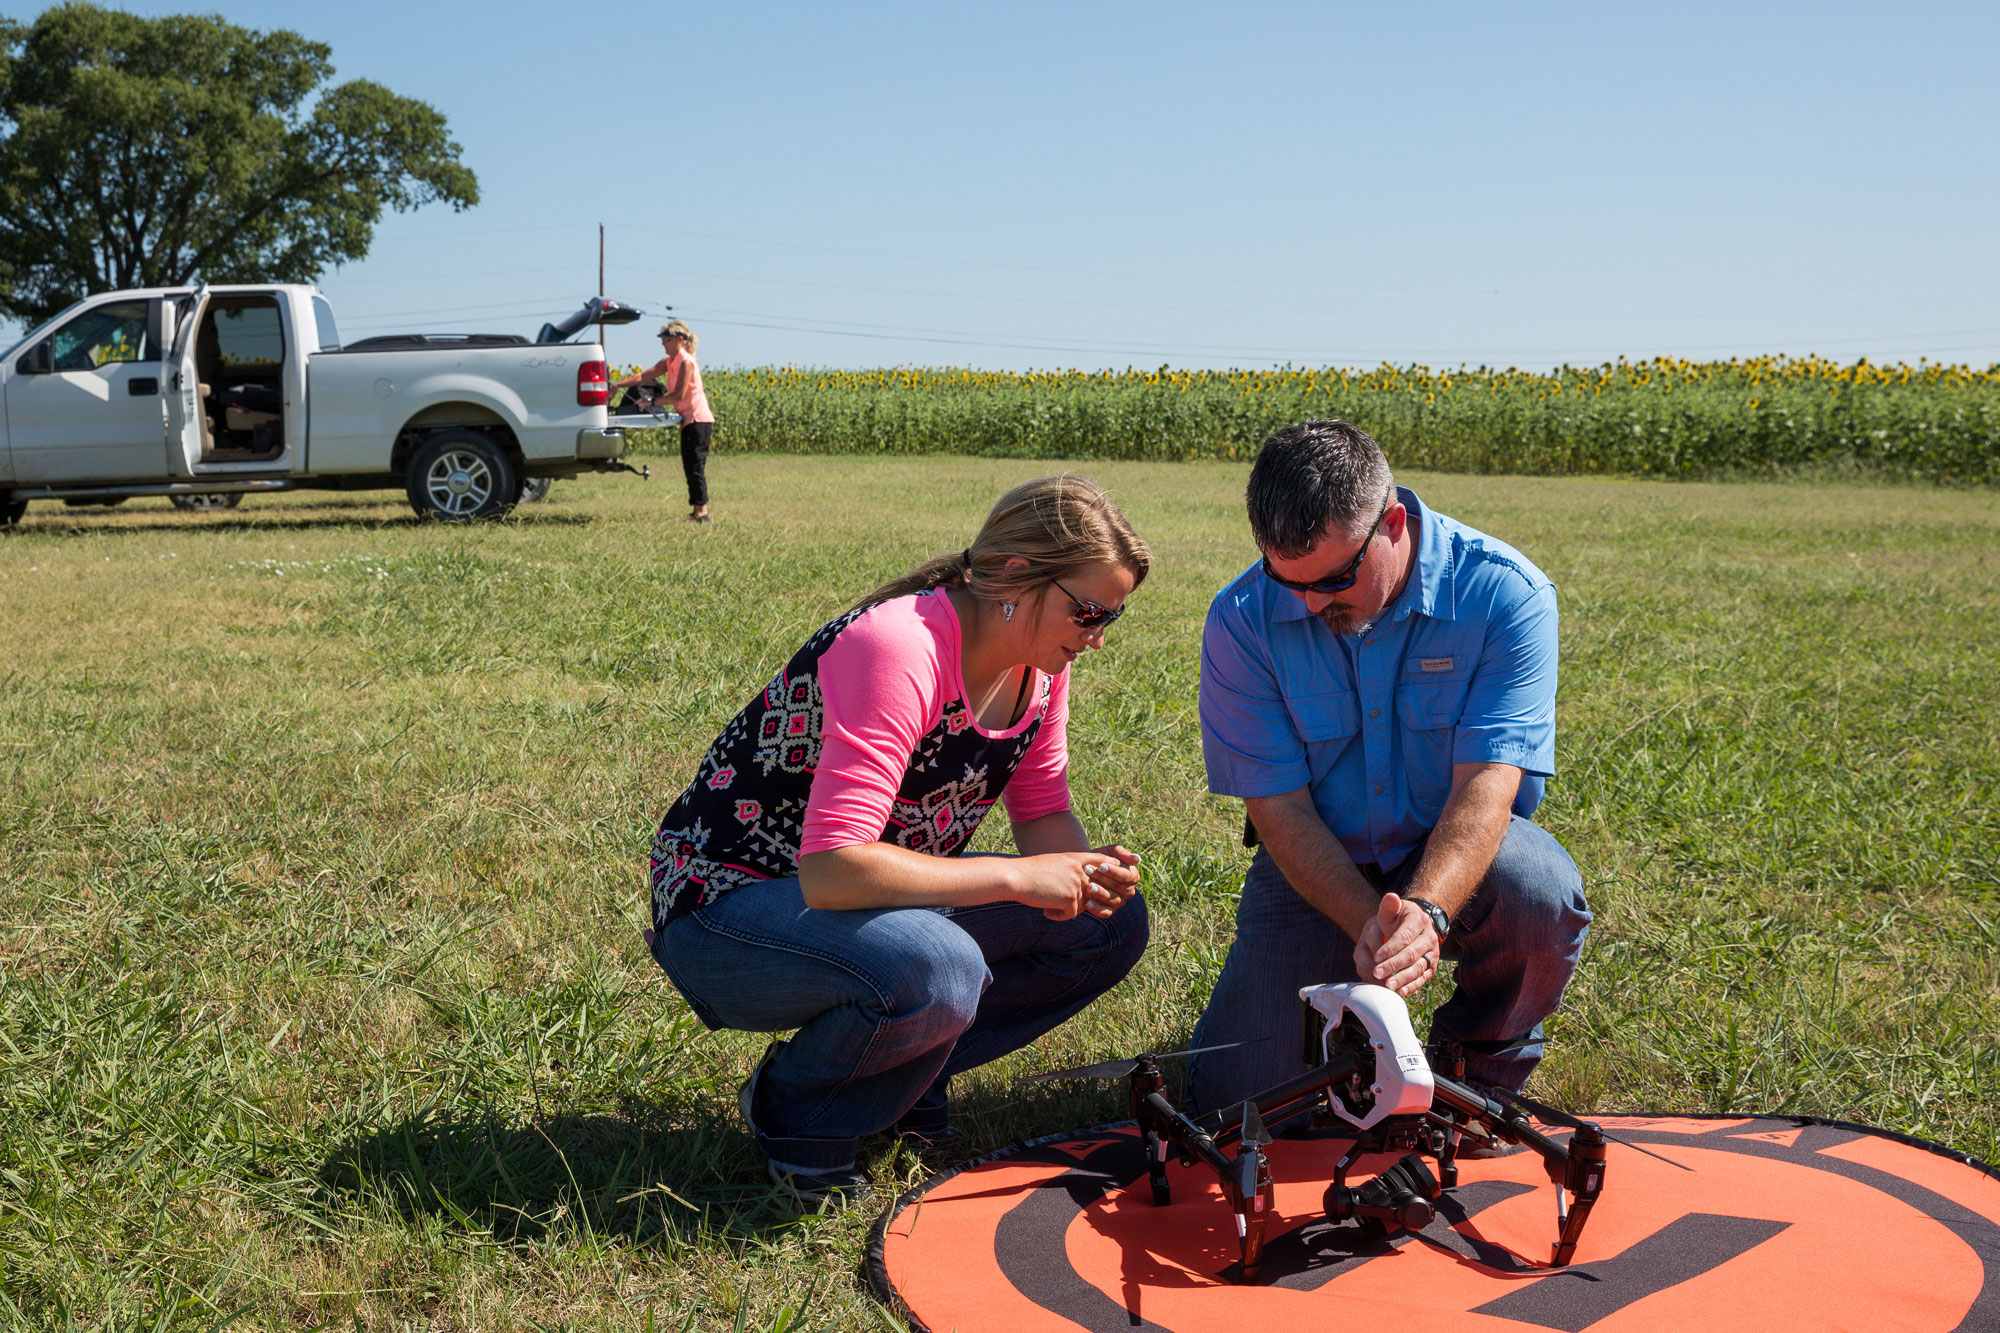 Dillon Payne shows Nicole Sederstrom how unmanned aerial vehicles can be used in agricultural research